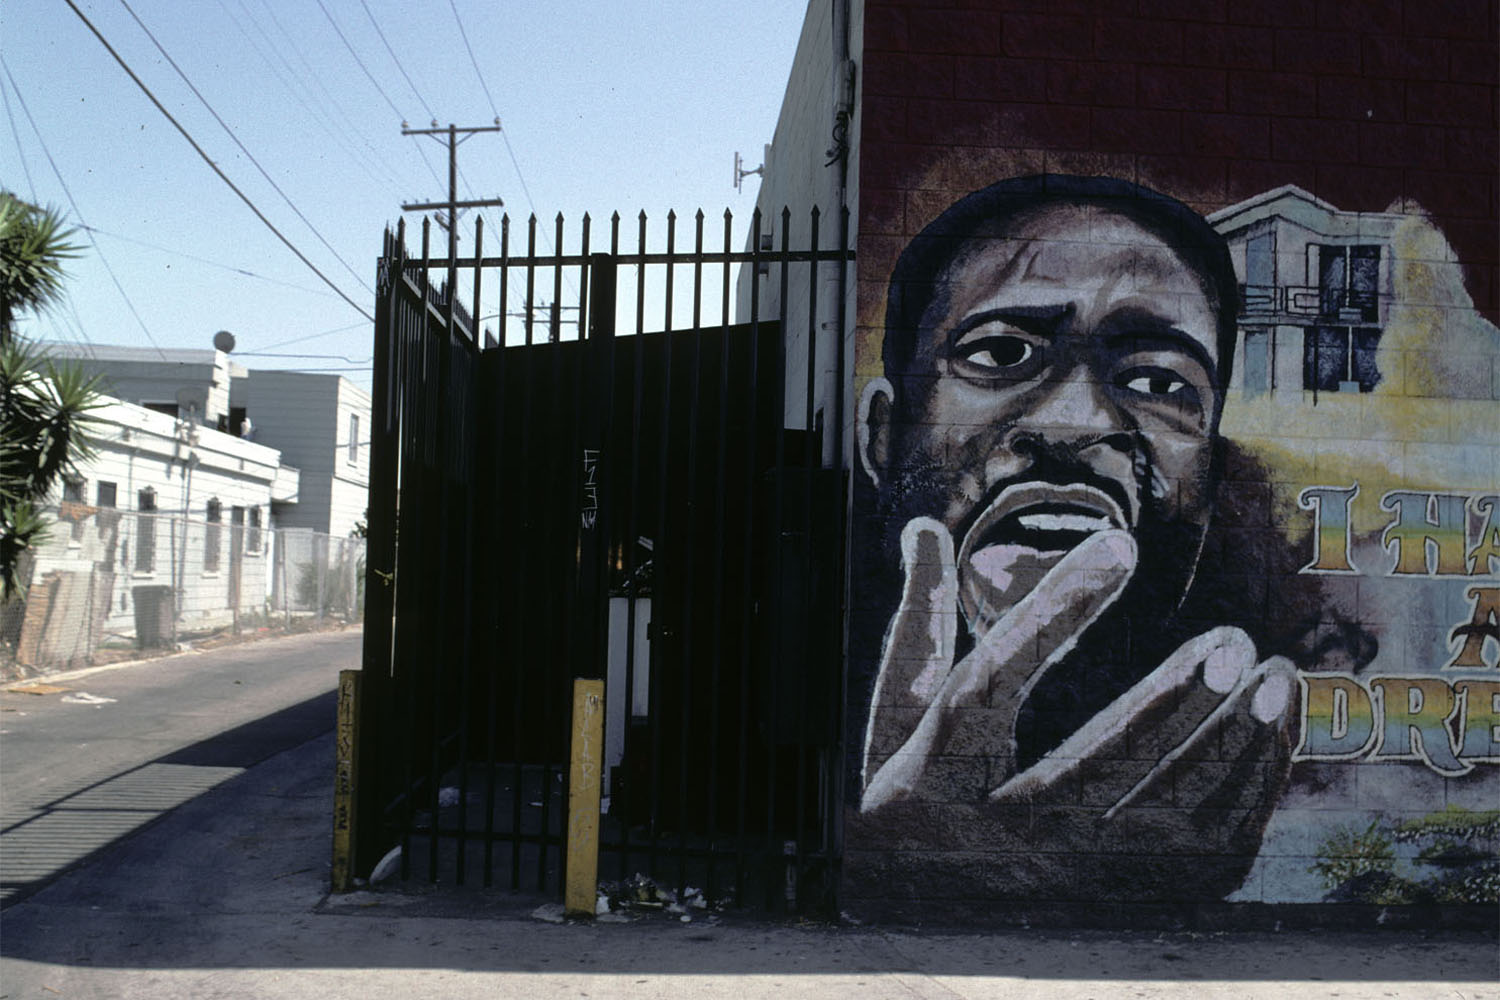 76 Place at South Central Avenue, Los Angeles 2009